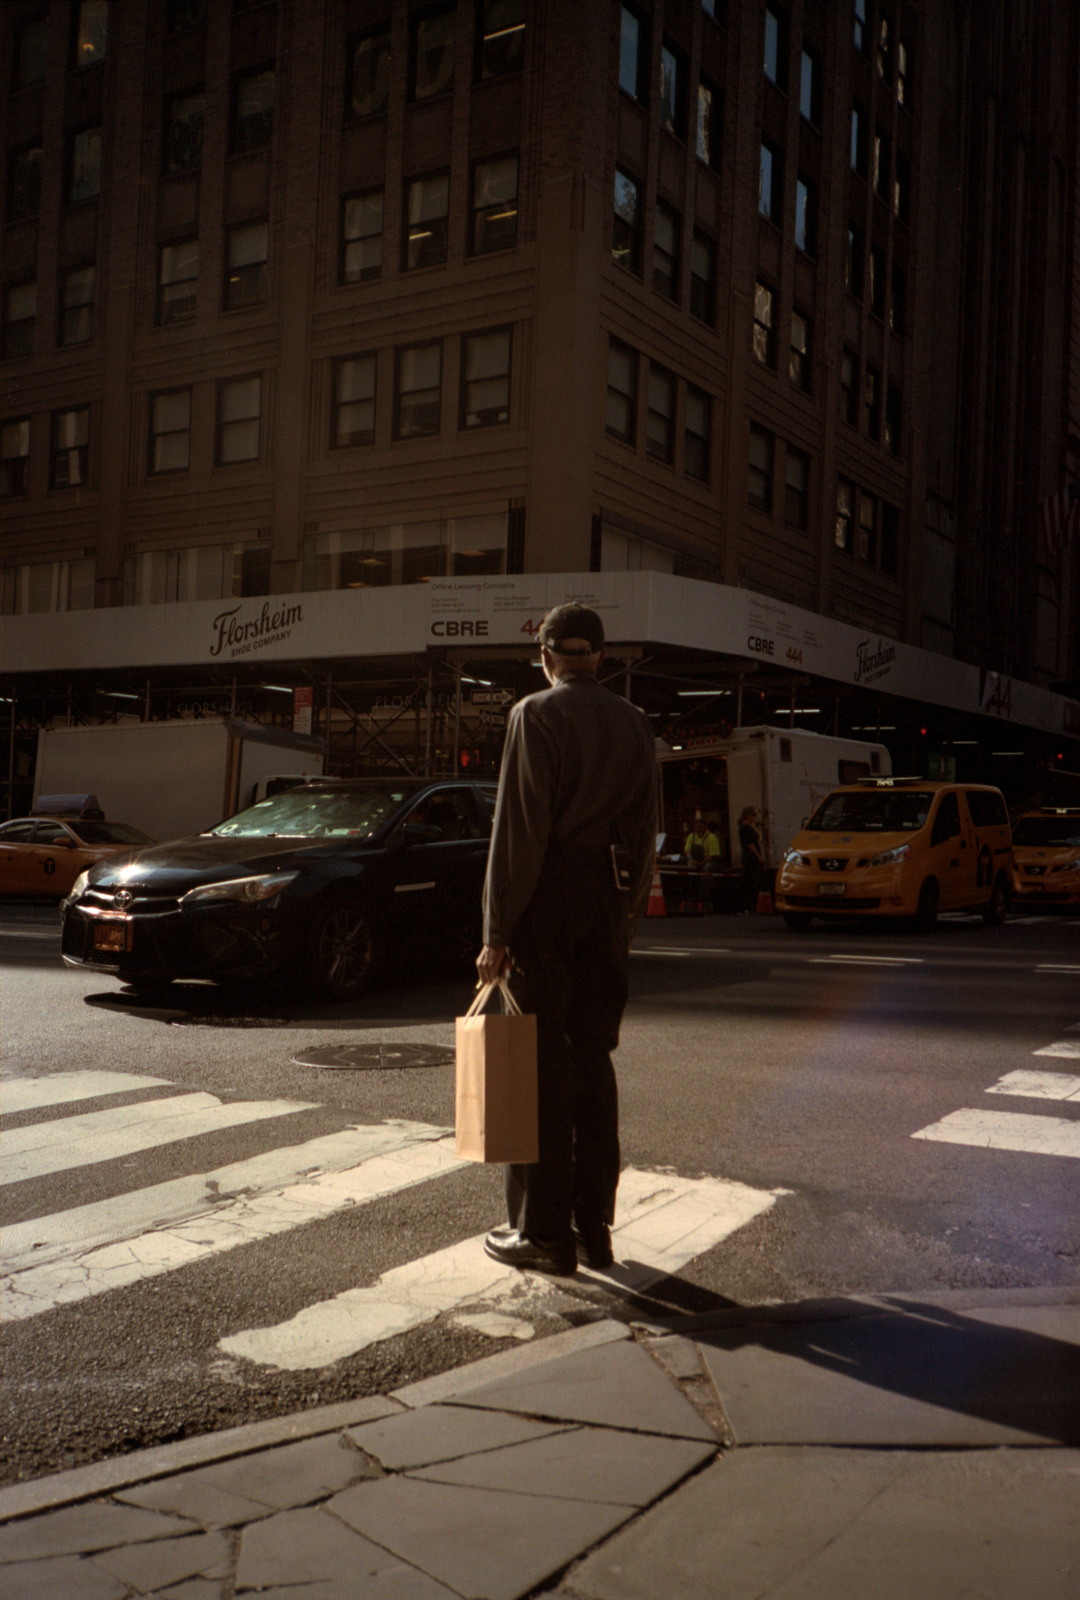 Awaiting Traffic On Madison Avenue, Lonely New York, Photography by Ioannis Koussertari